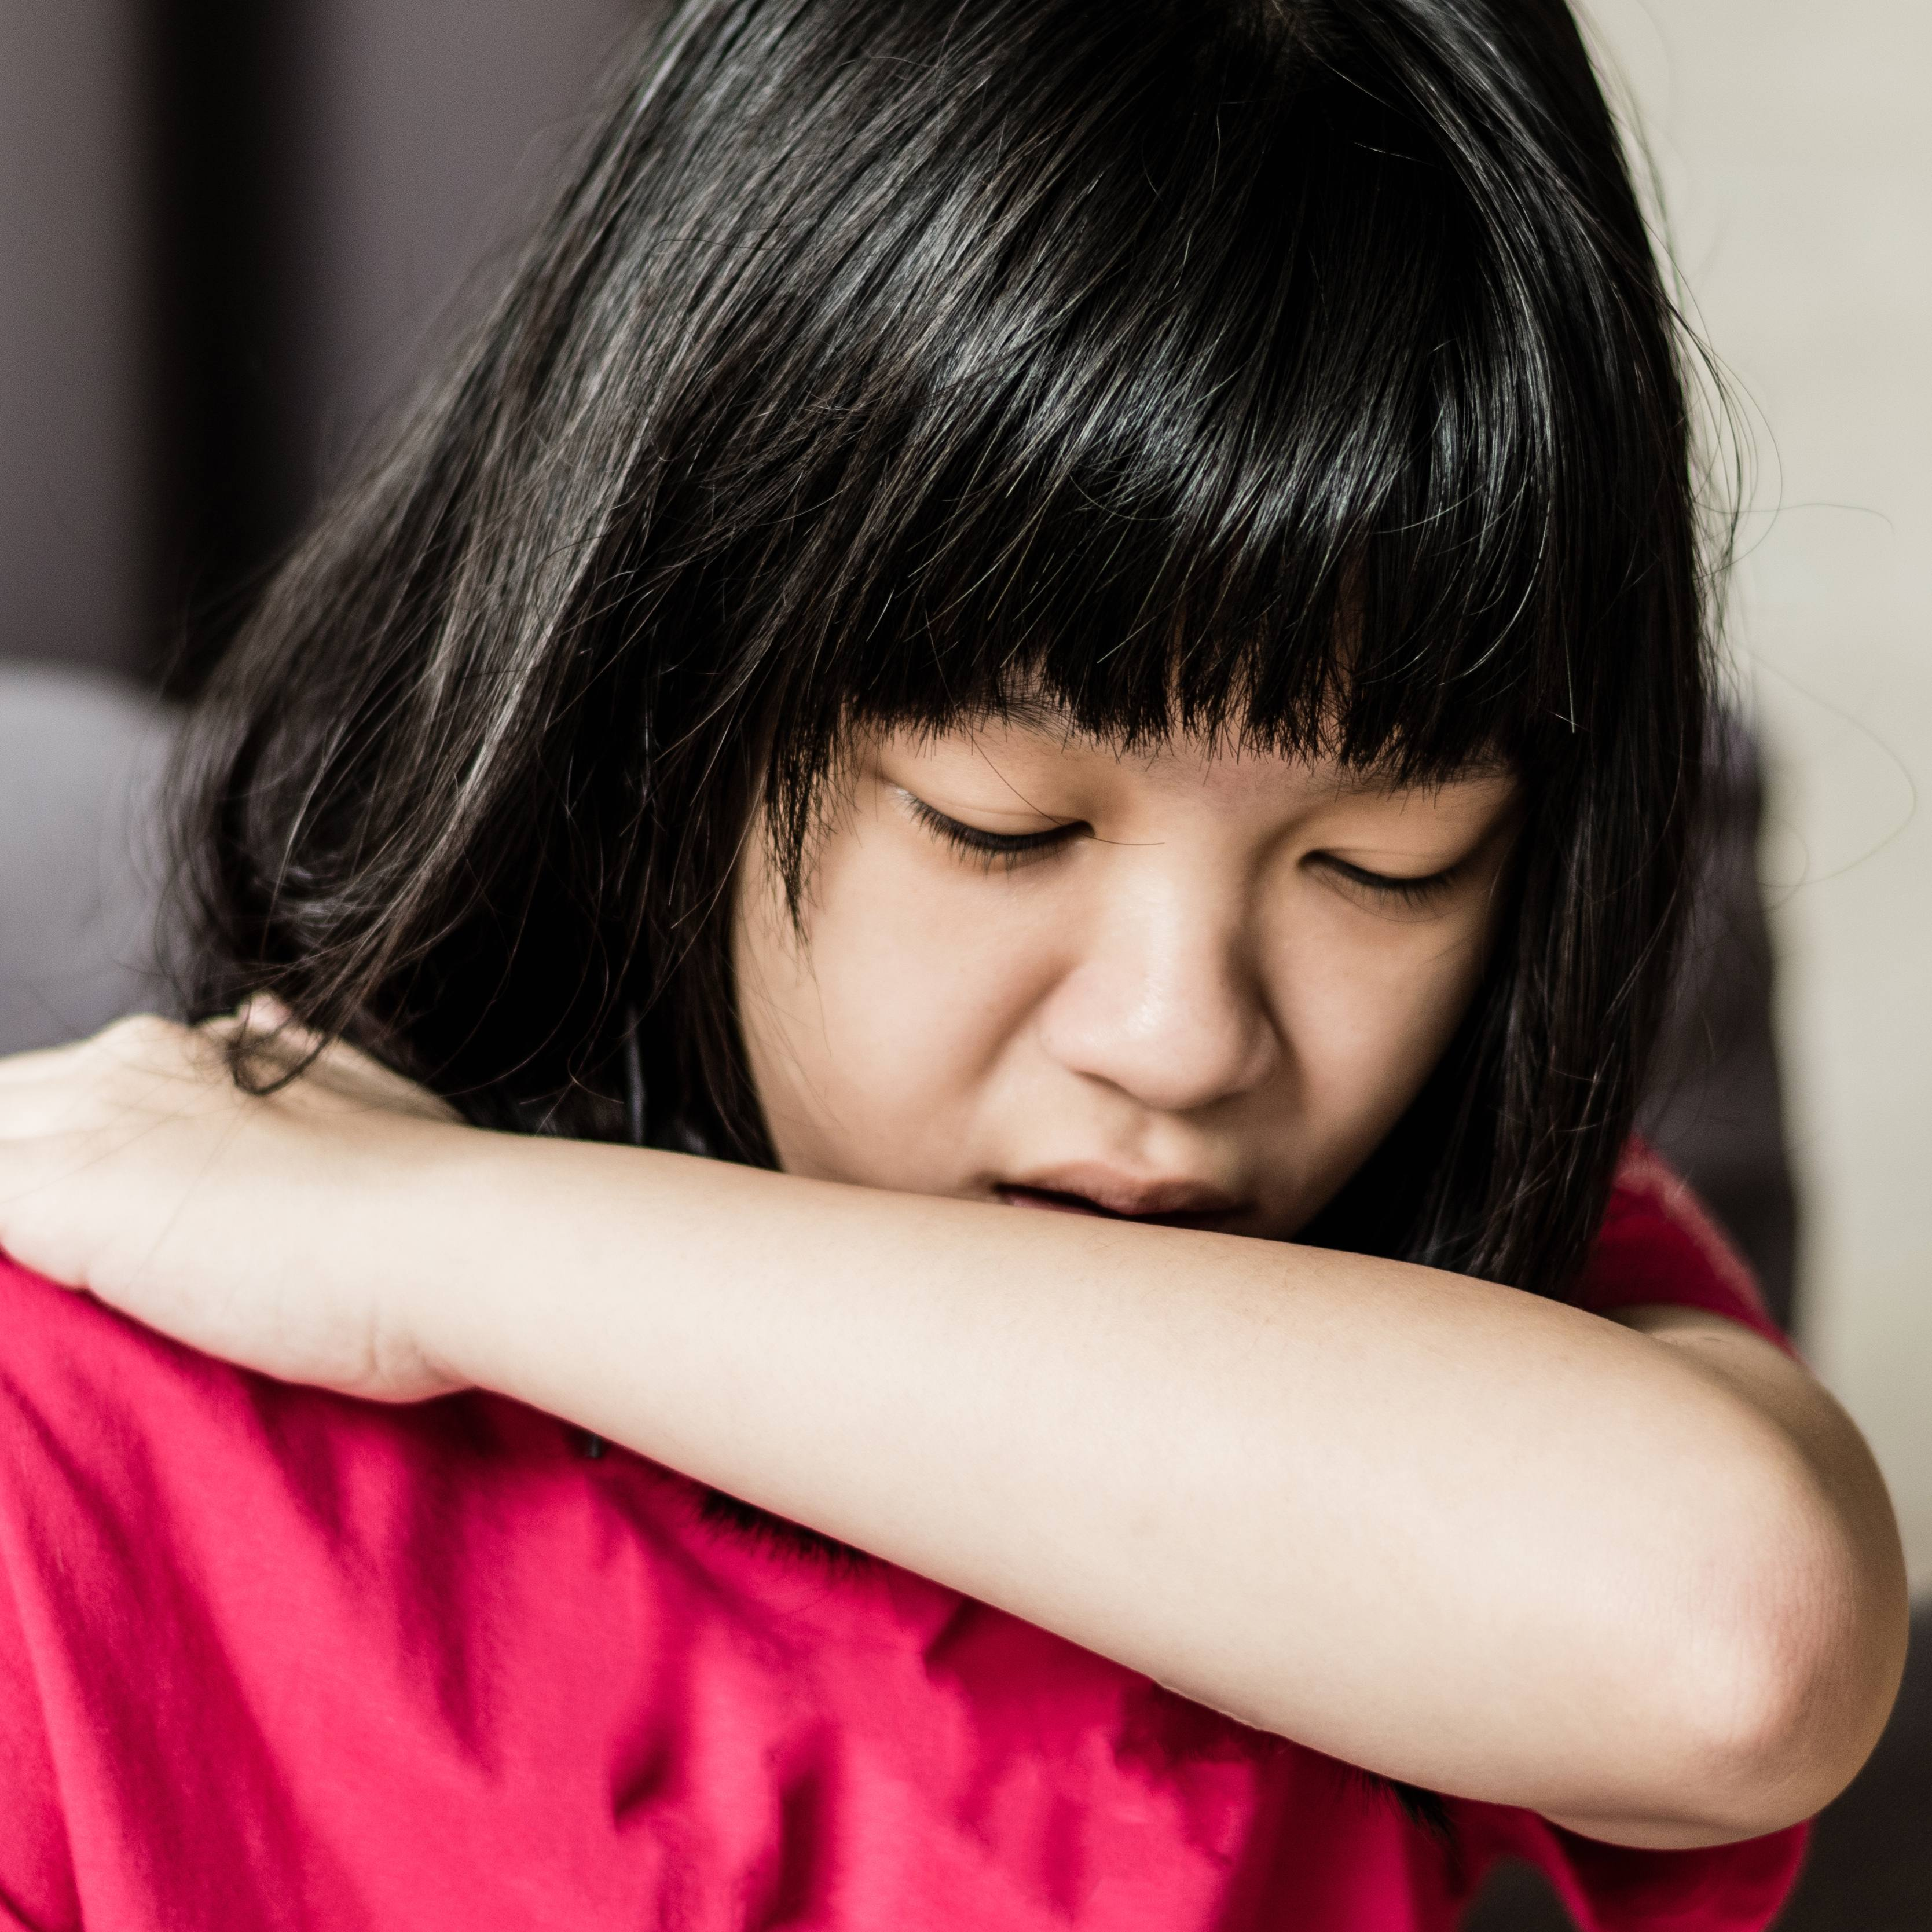 a young Asian girl who might be sick with a cold or the flu, is coughing into her elbow